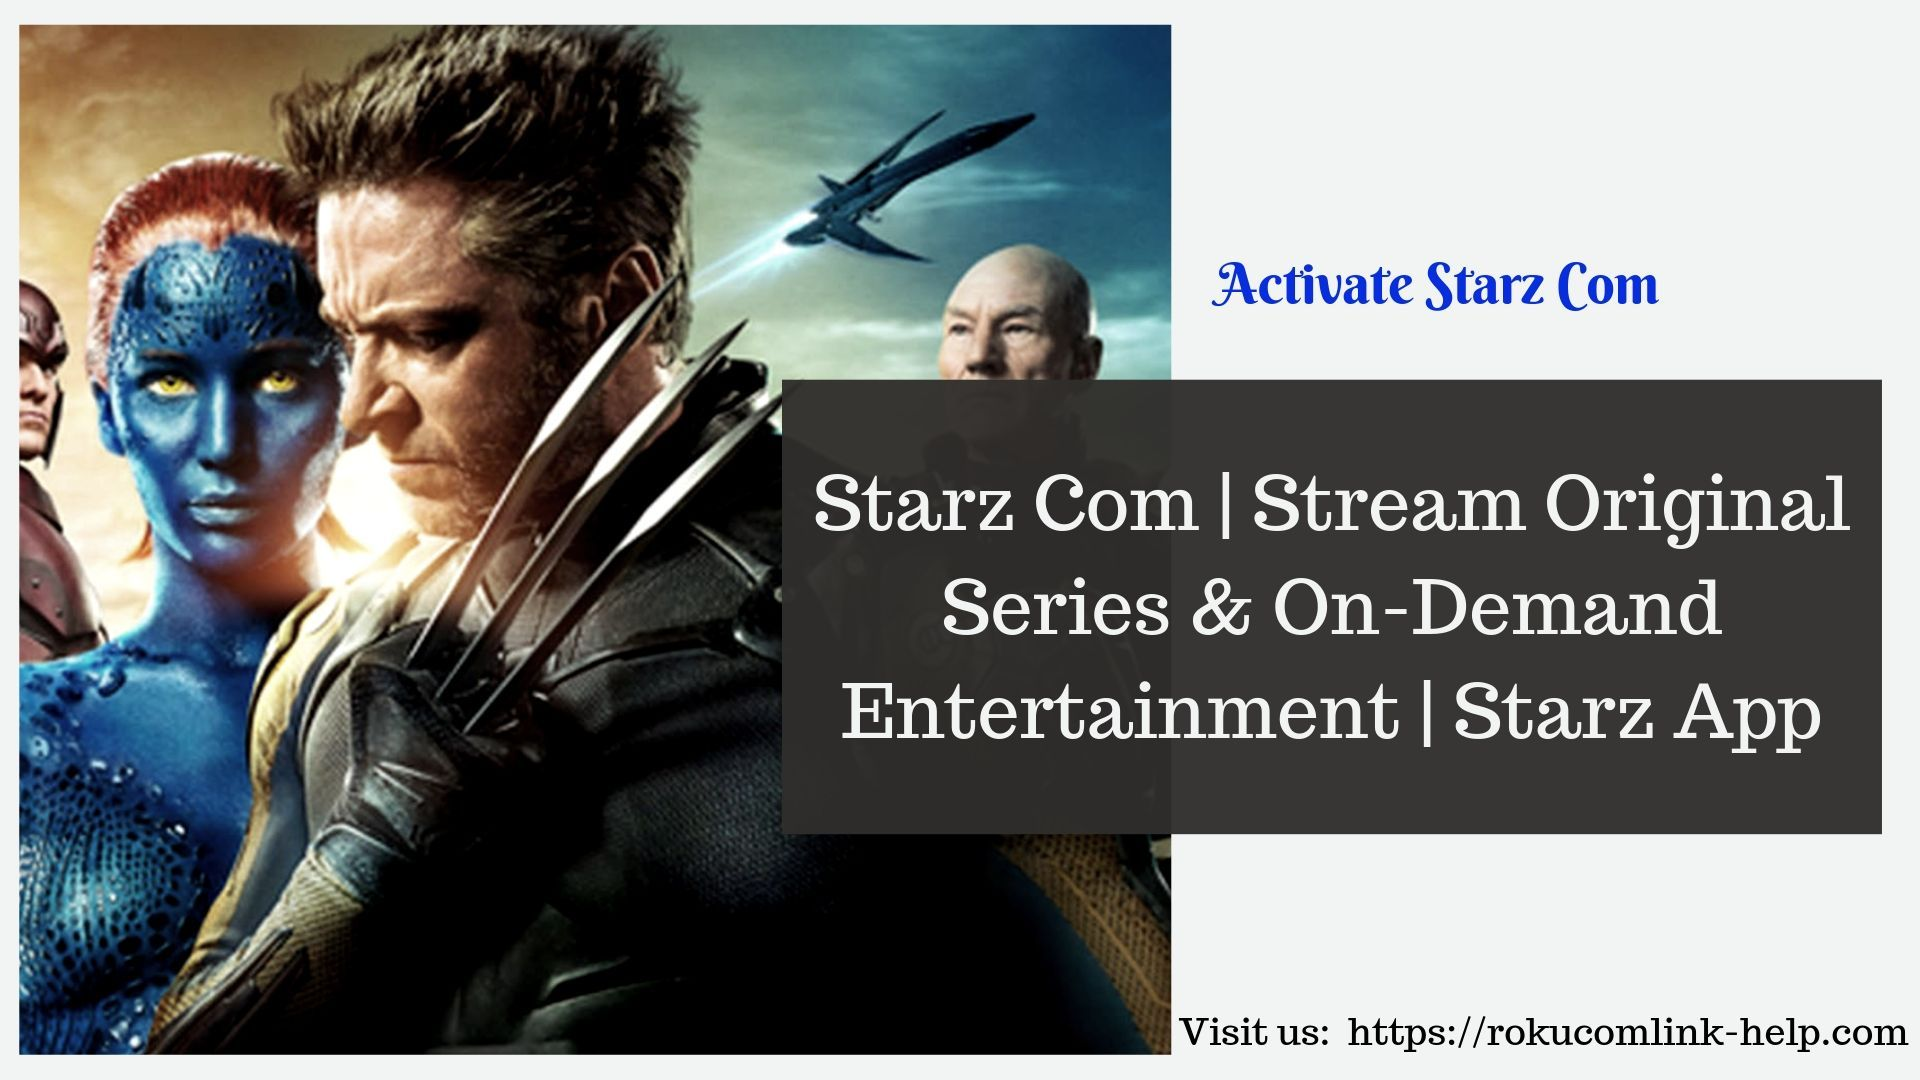 How to Activate Starz Com on Roku (With images) Starz